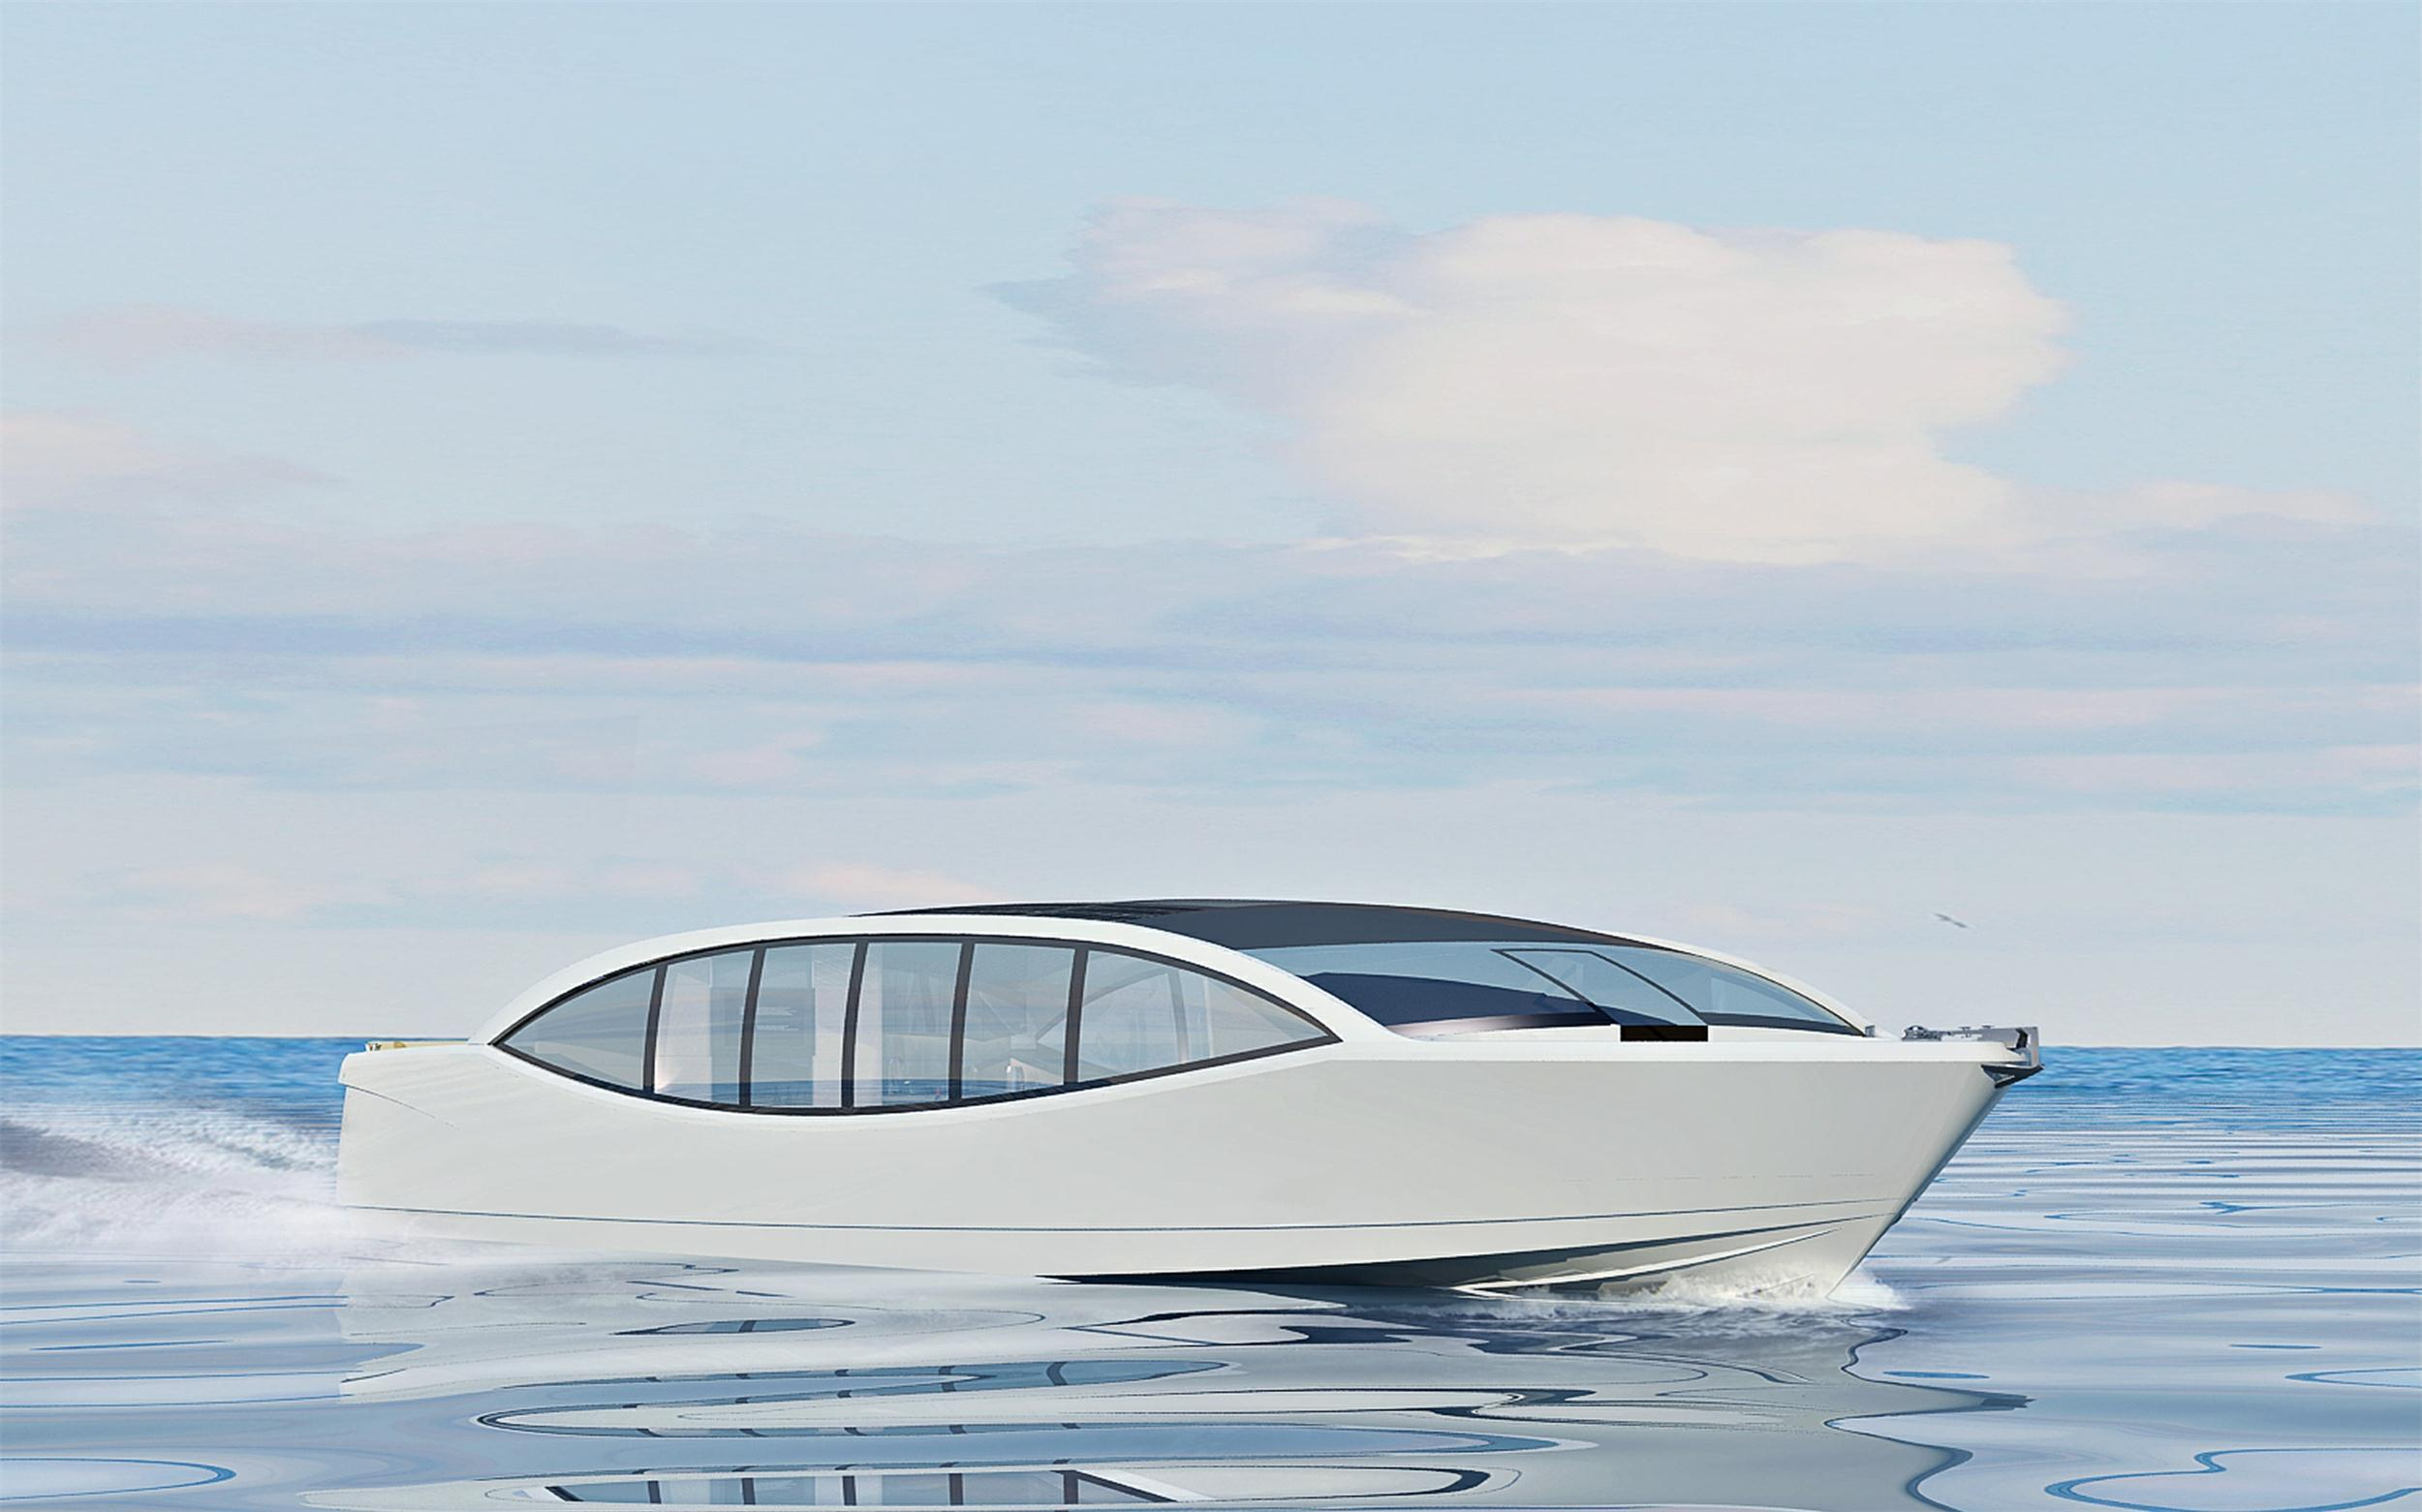 Seastella 53ft Crystal Palace Luxury Commercial Yacht with Solar Energy